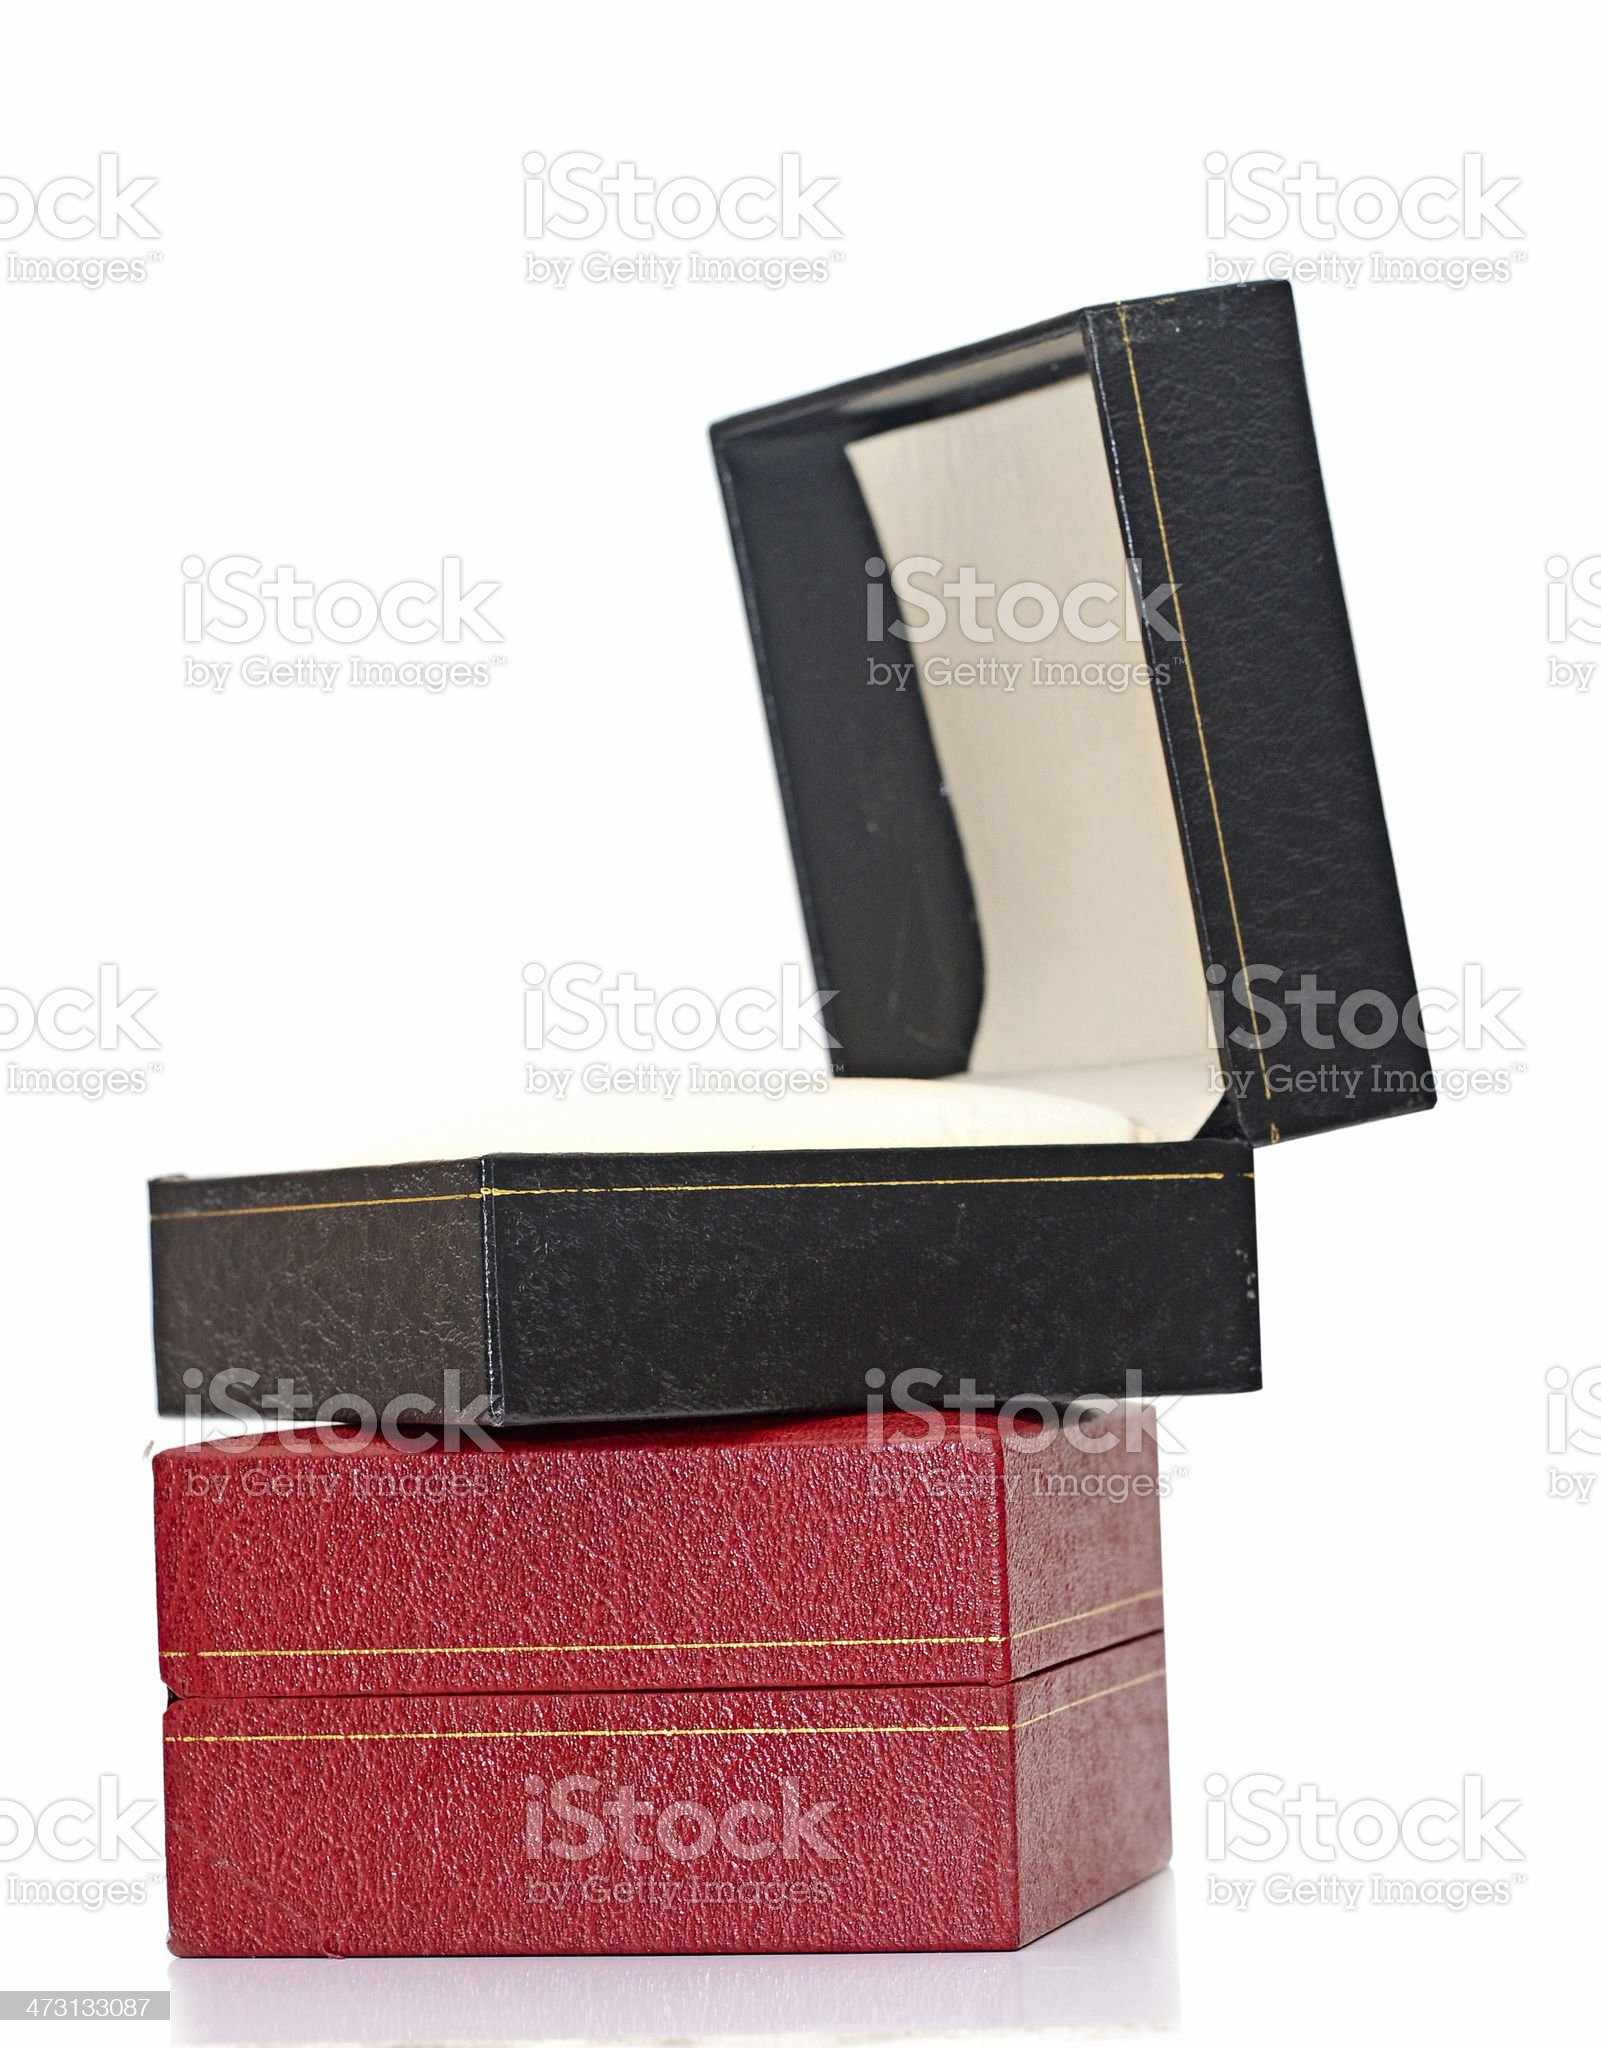 black and red gift boxes over white background. royalty-free stock photo